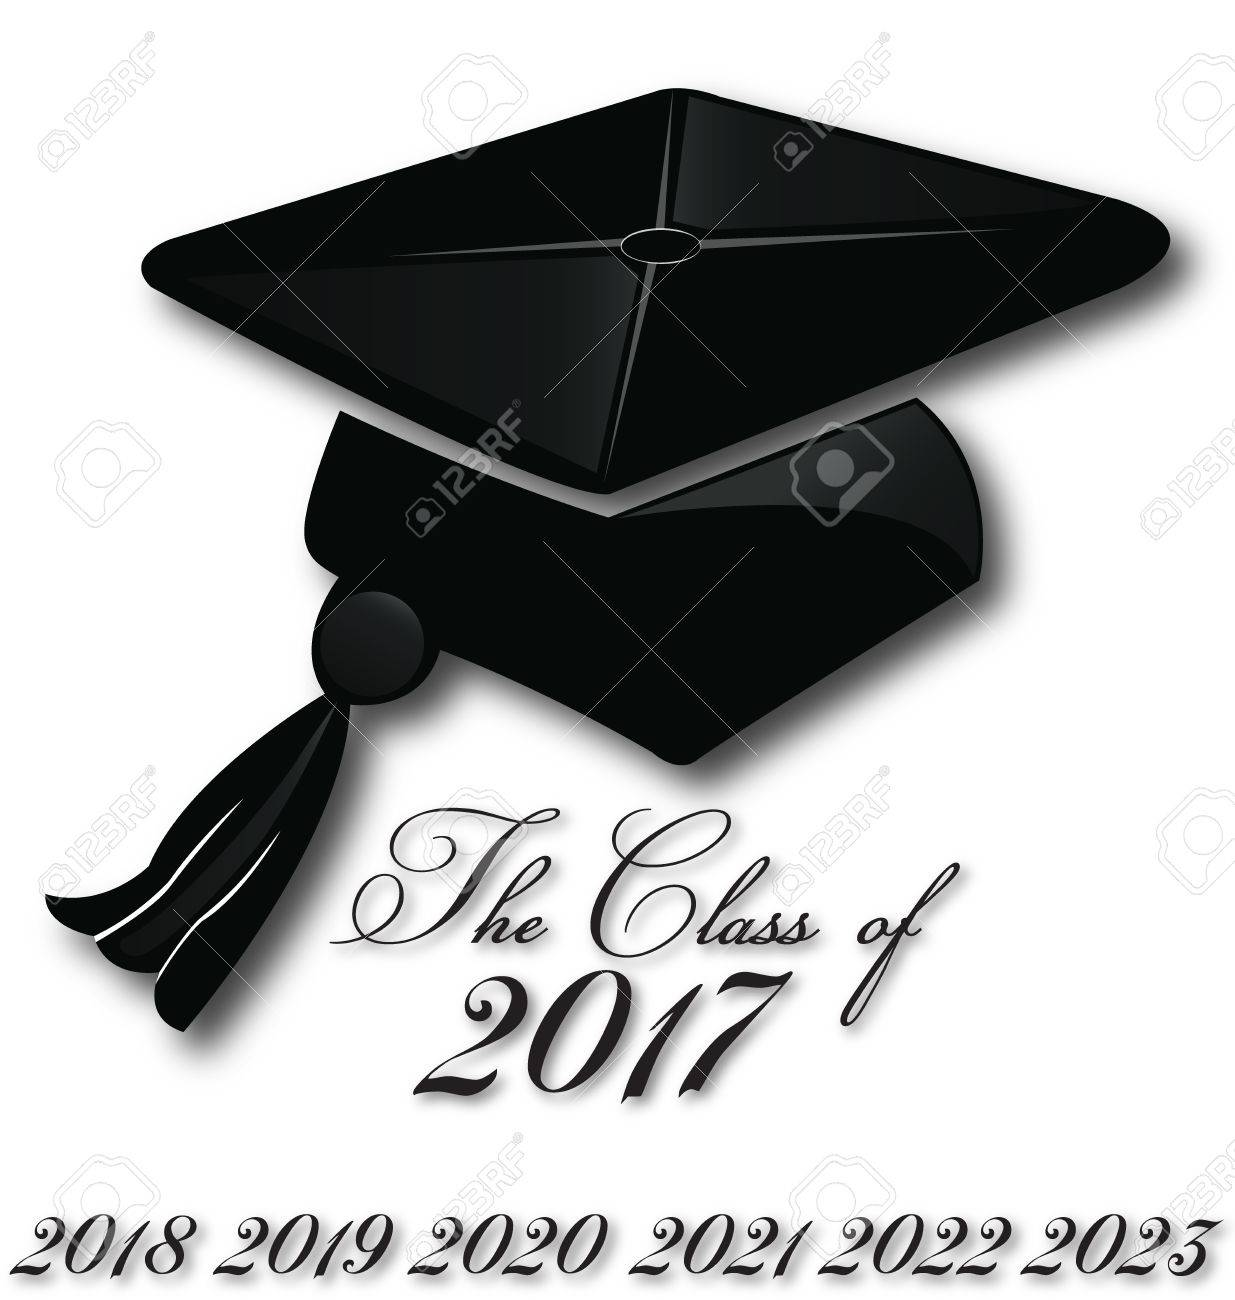 Graduation Hat 2020.Graduation Hat For The Class Of 2017 2018 2019 2019 2020 Icon